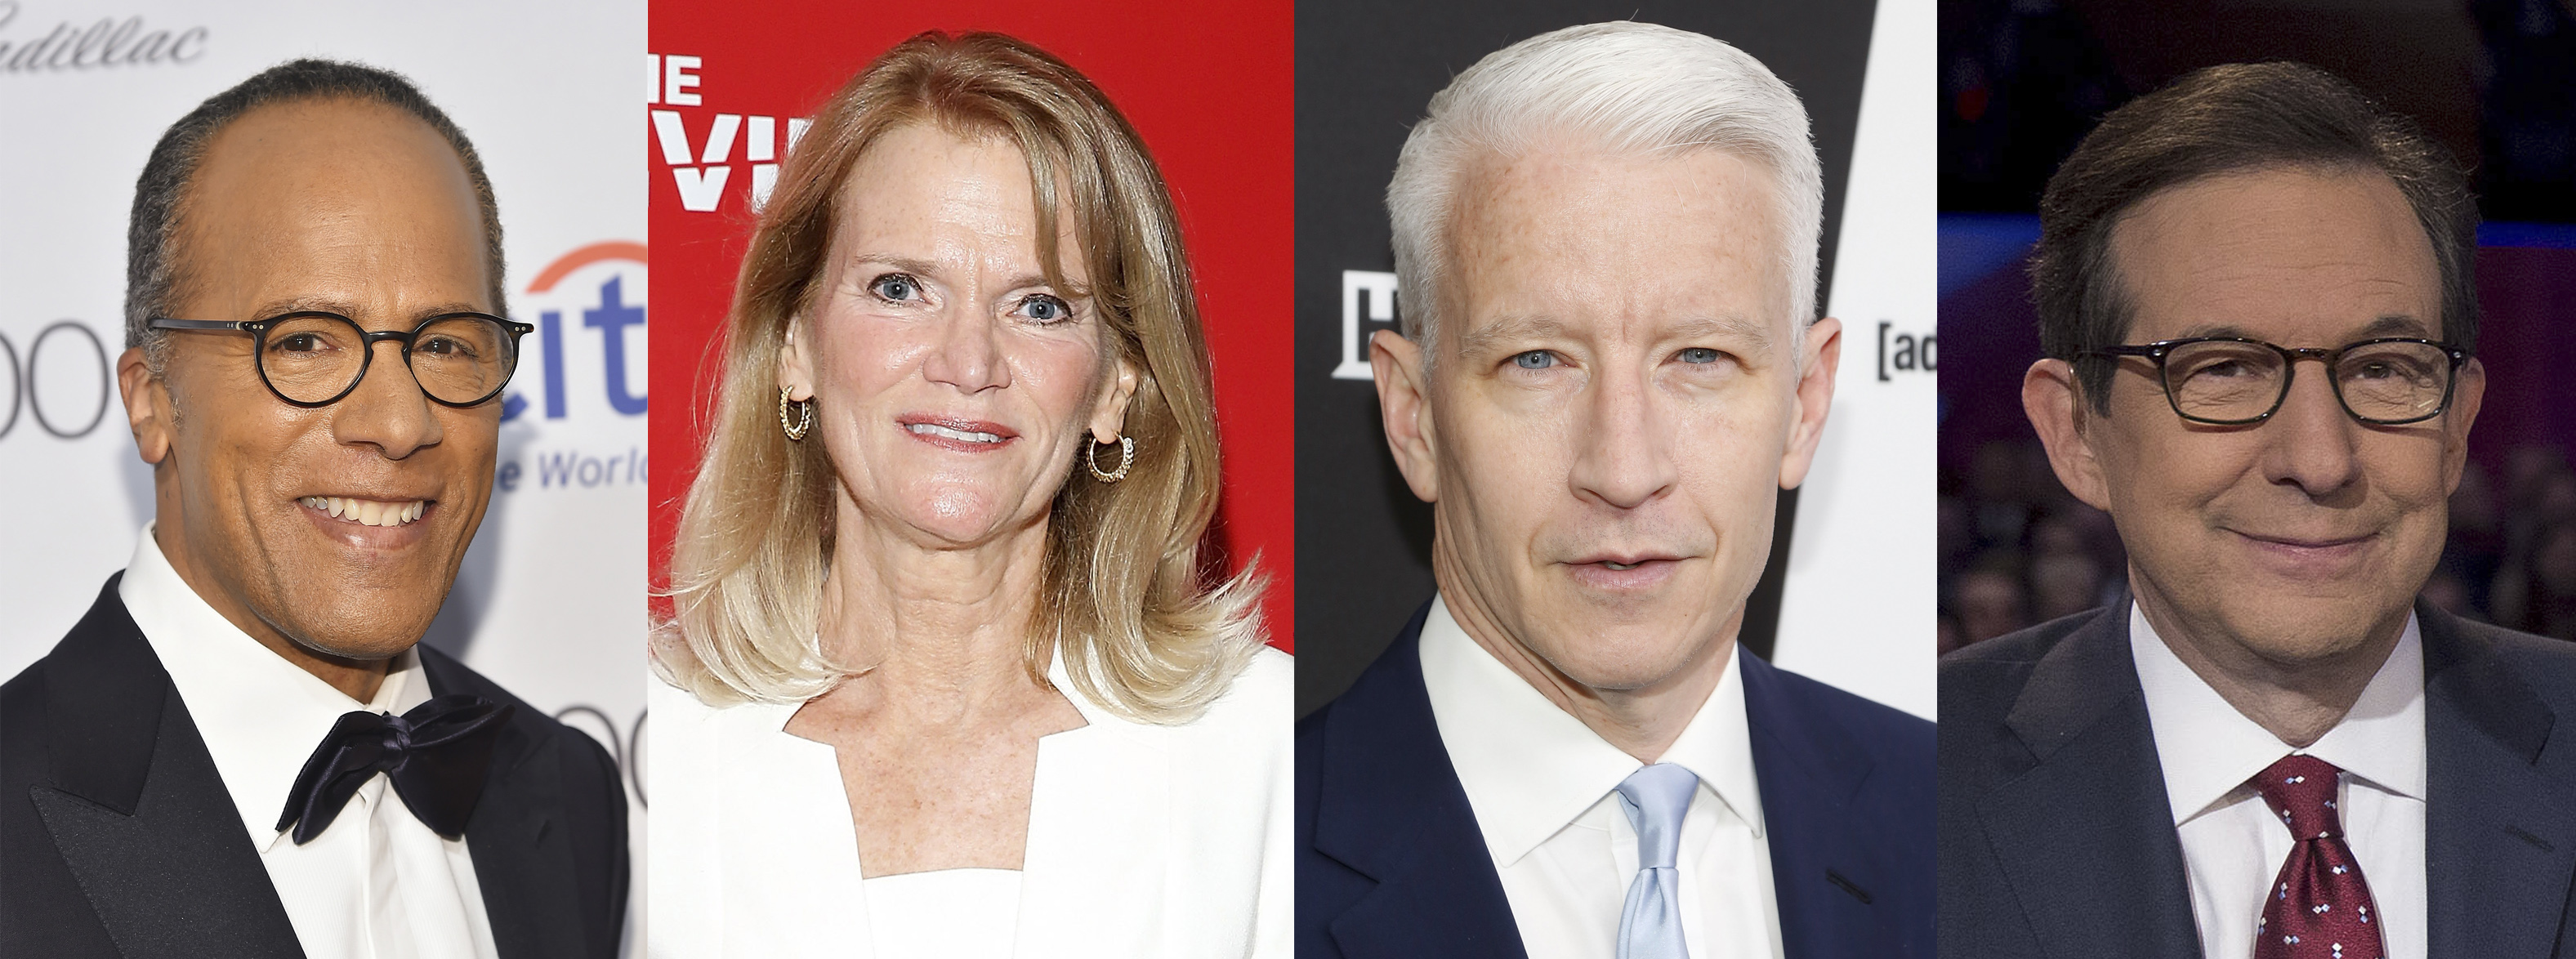 Lester Holt, Martha Raddatz, Anderson Cooper, and Chris Wallace.